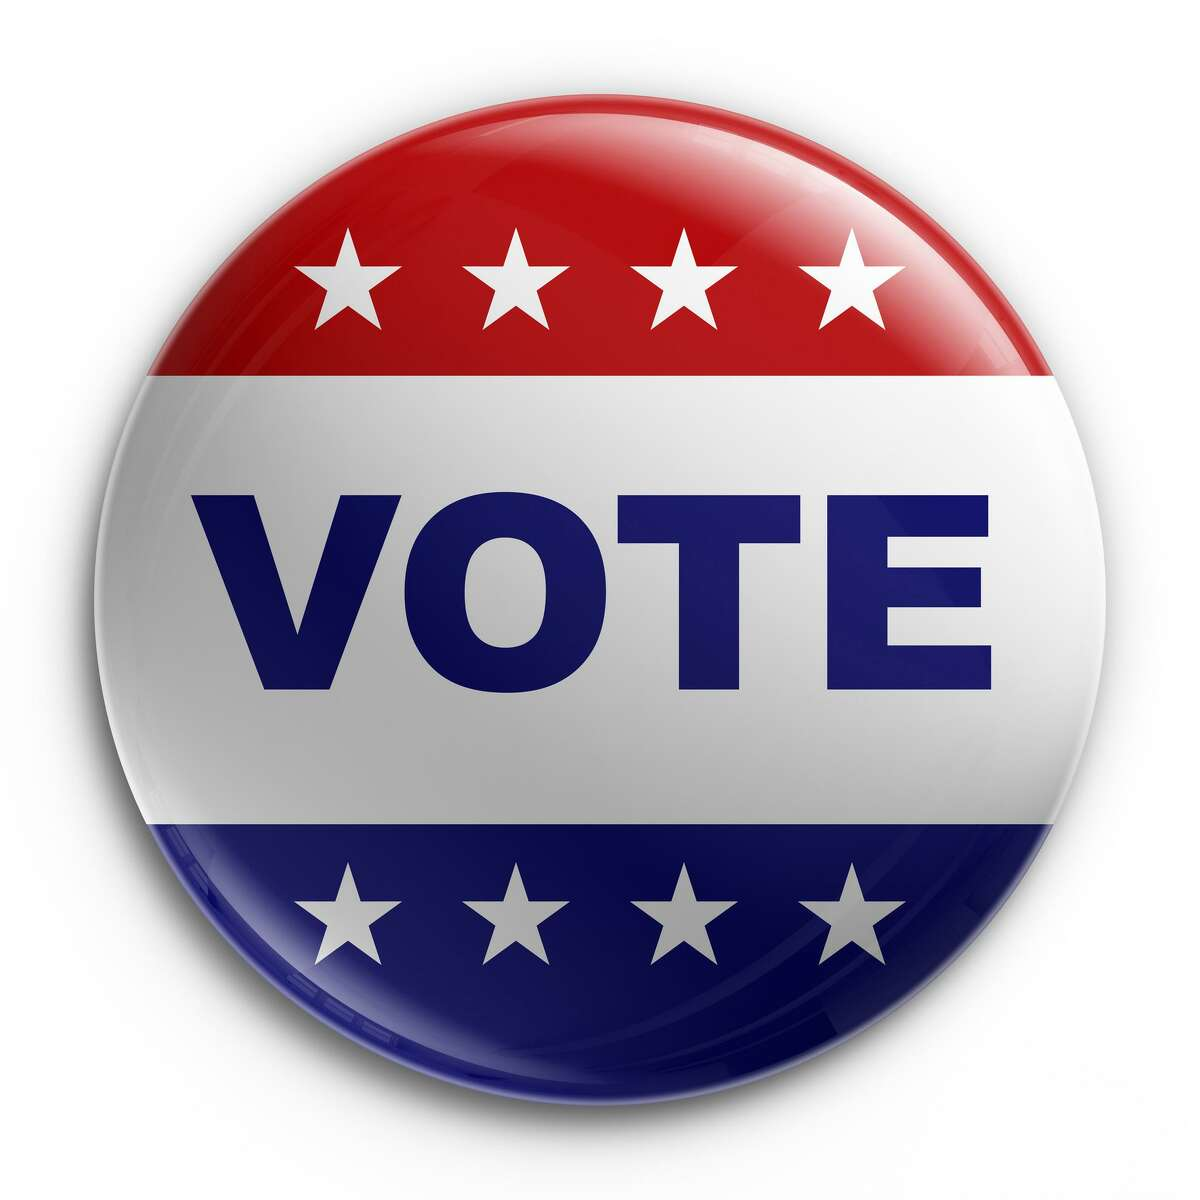 3d rendering of a badge to encourage voting; VOTE BUTTON election button